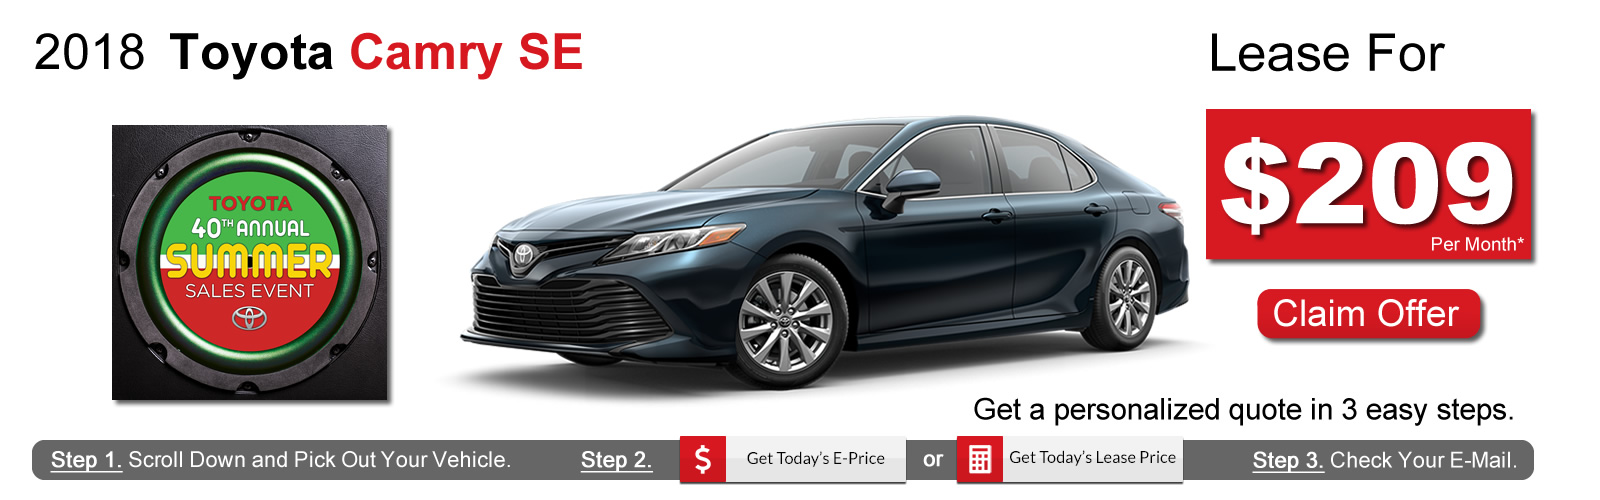 toyota new corolla special of lease specials deals nashua dealership htm in nh anniversary